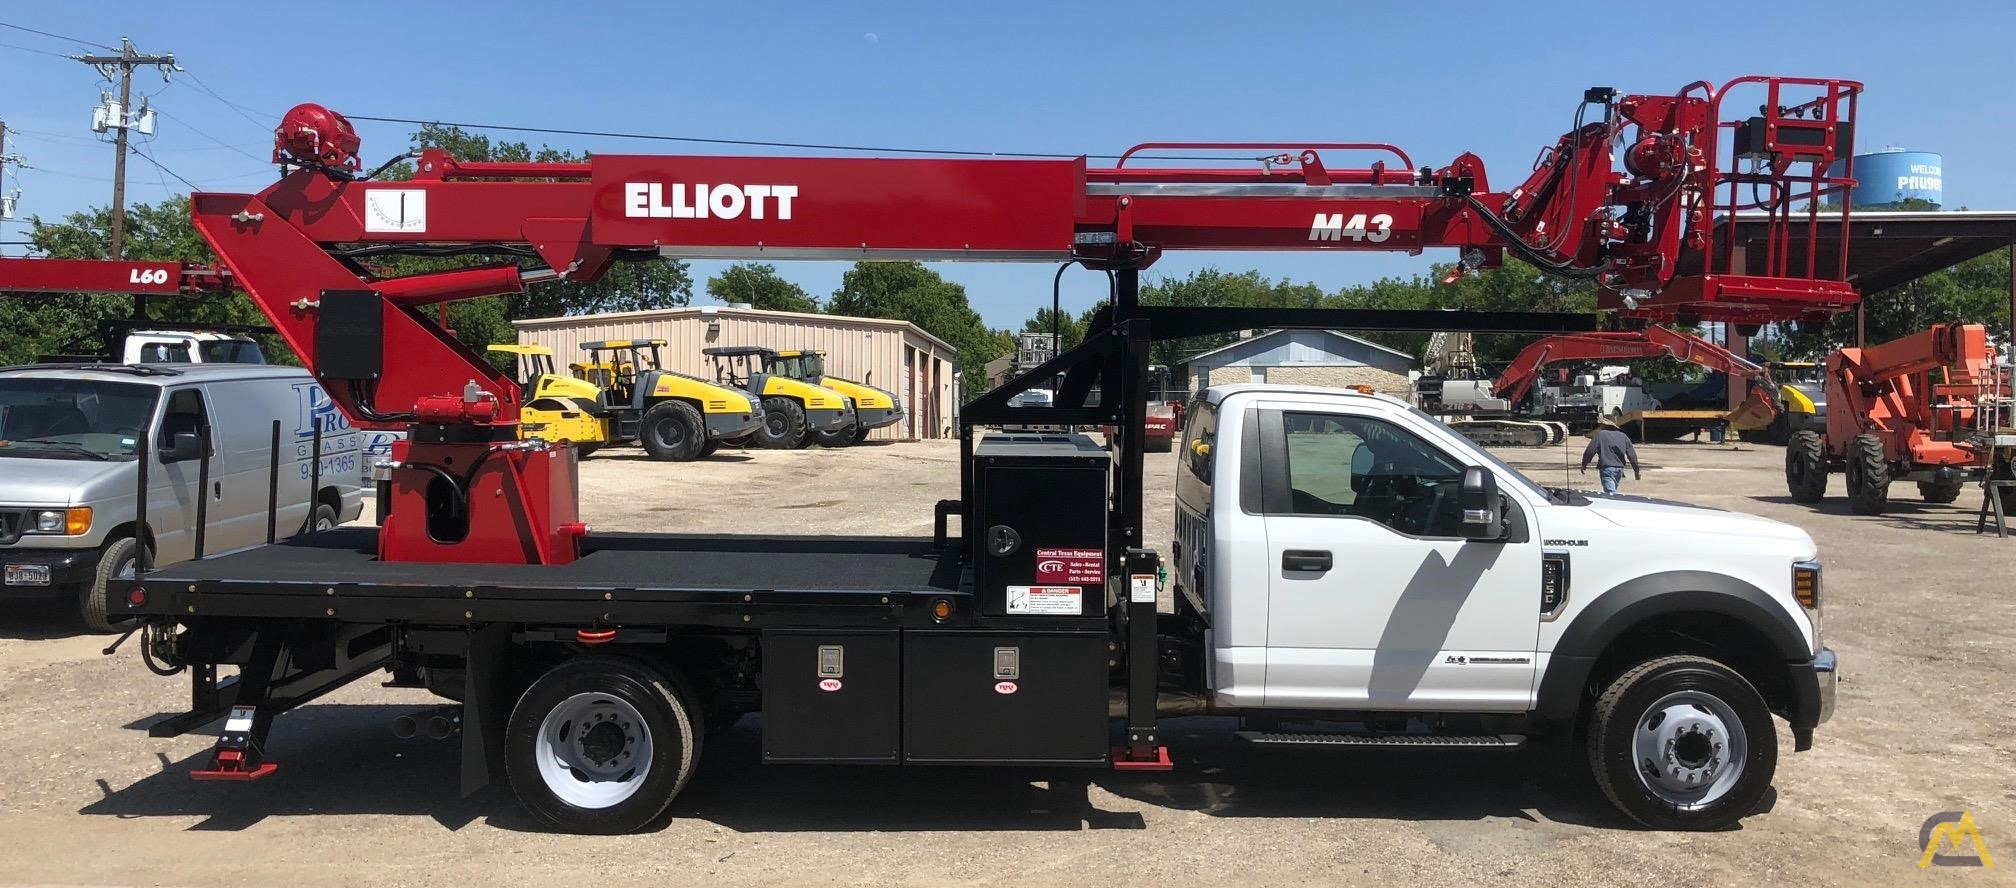 F550 For Sale >> Elliott M43r 43 Telescopic Aerial Work Platform On Ford F550 For Sale